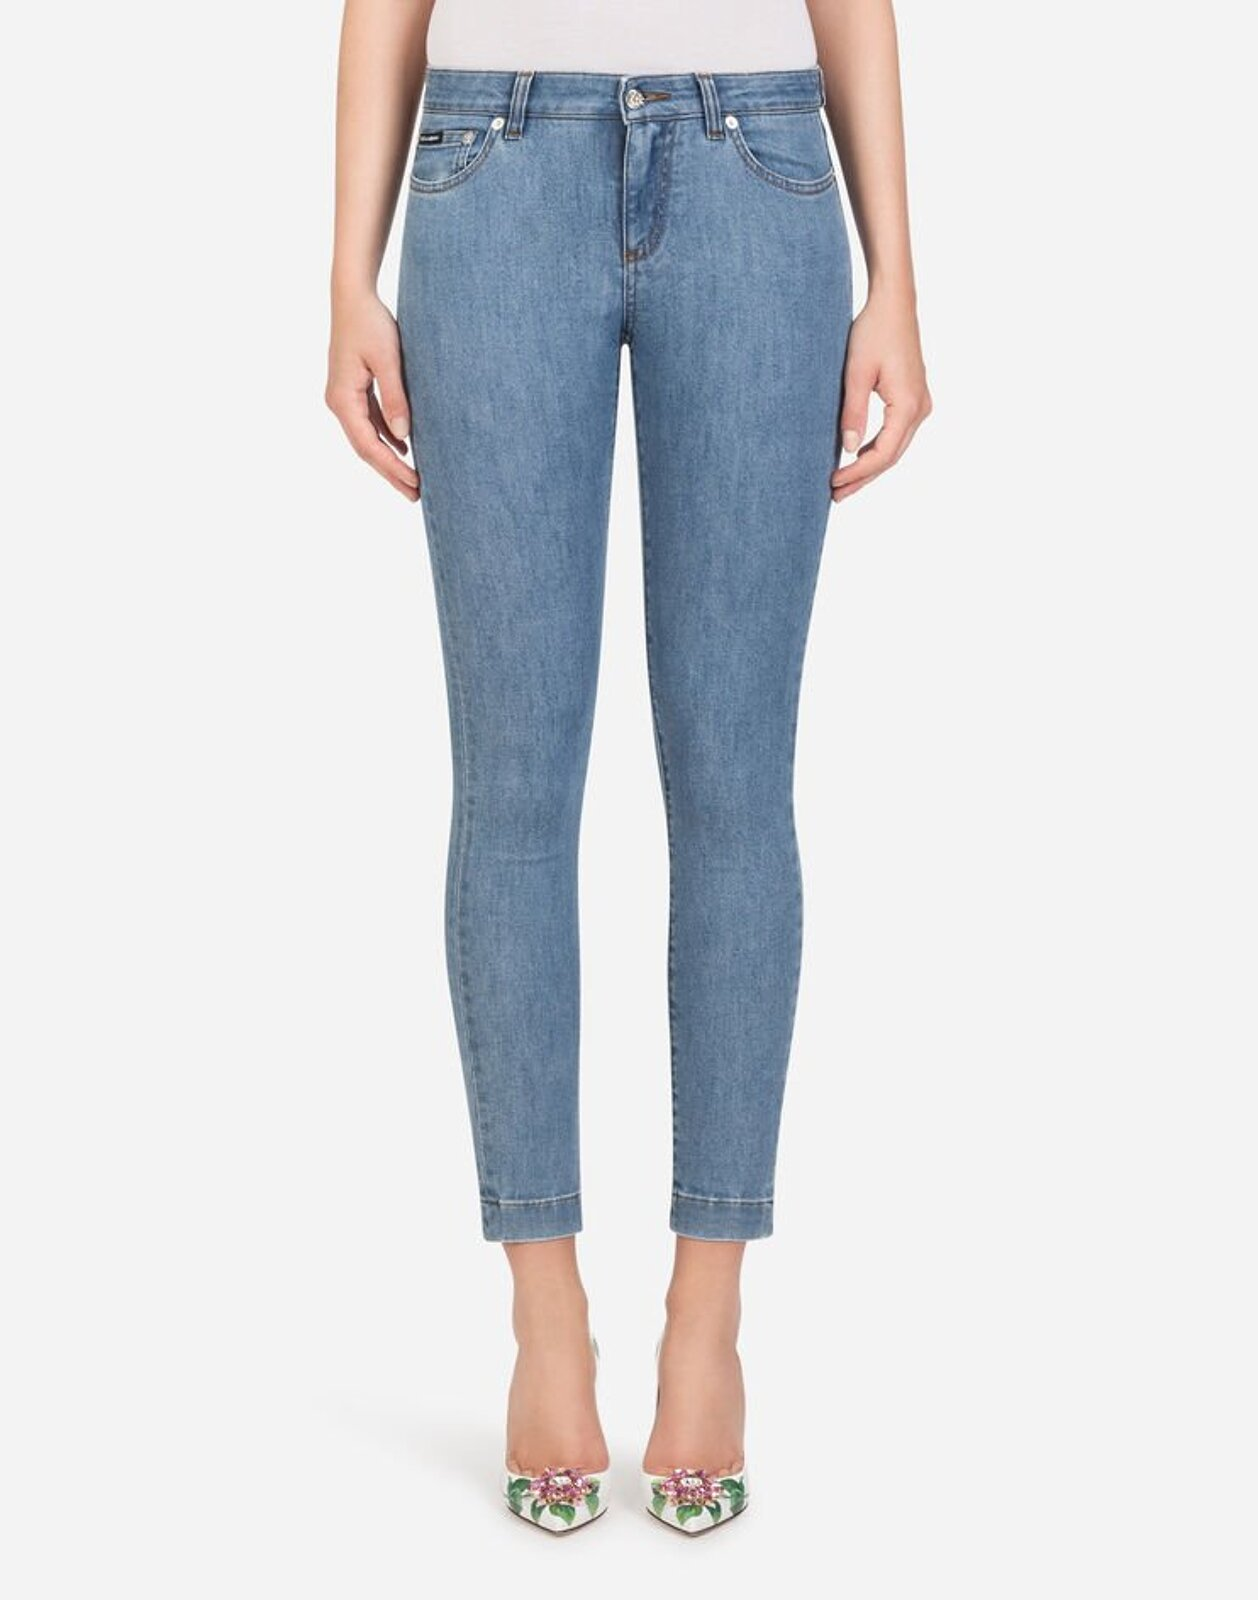 Jeans Fit Pretty In Denim Stretch - Dolce & Gabbana